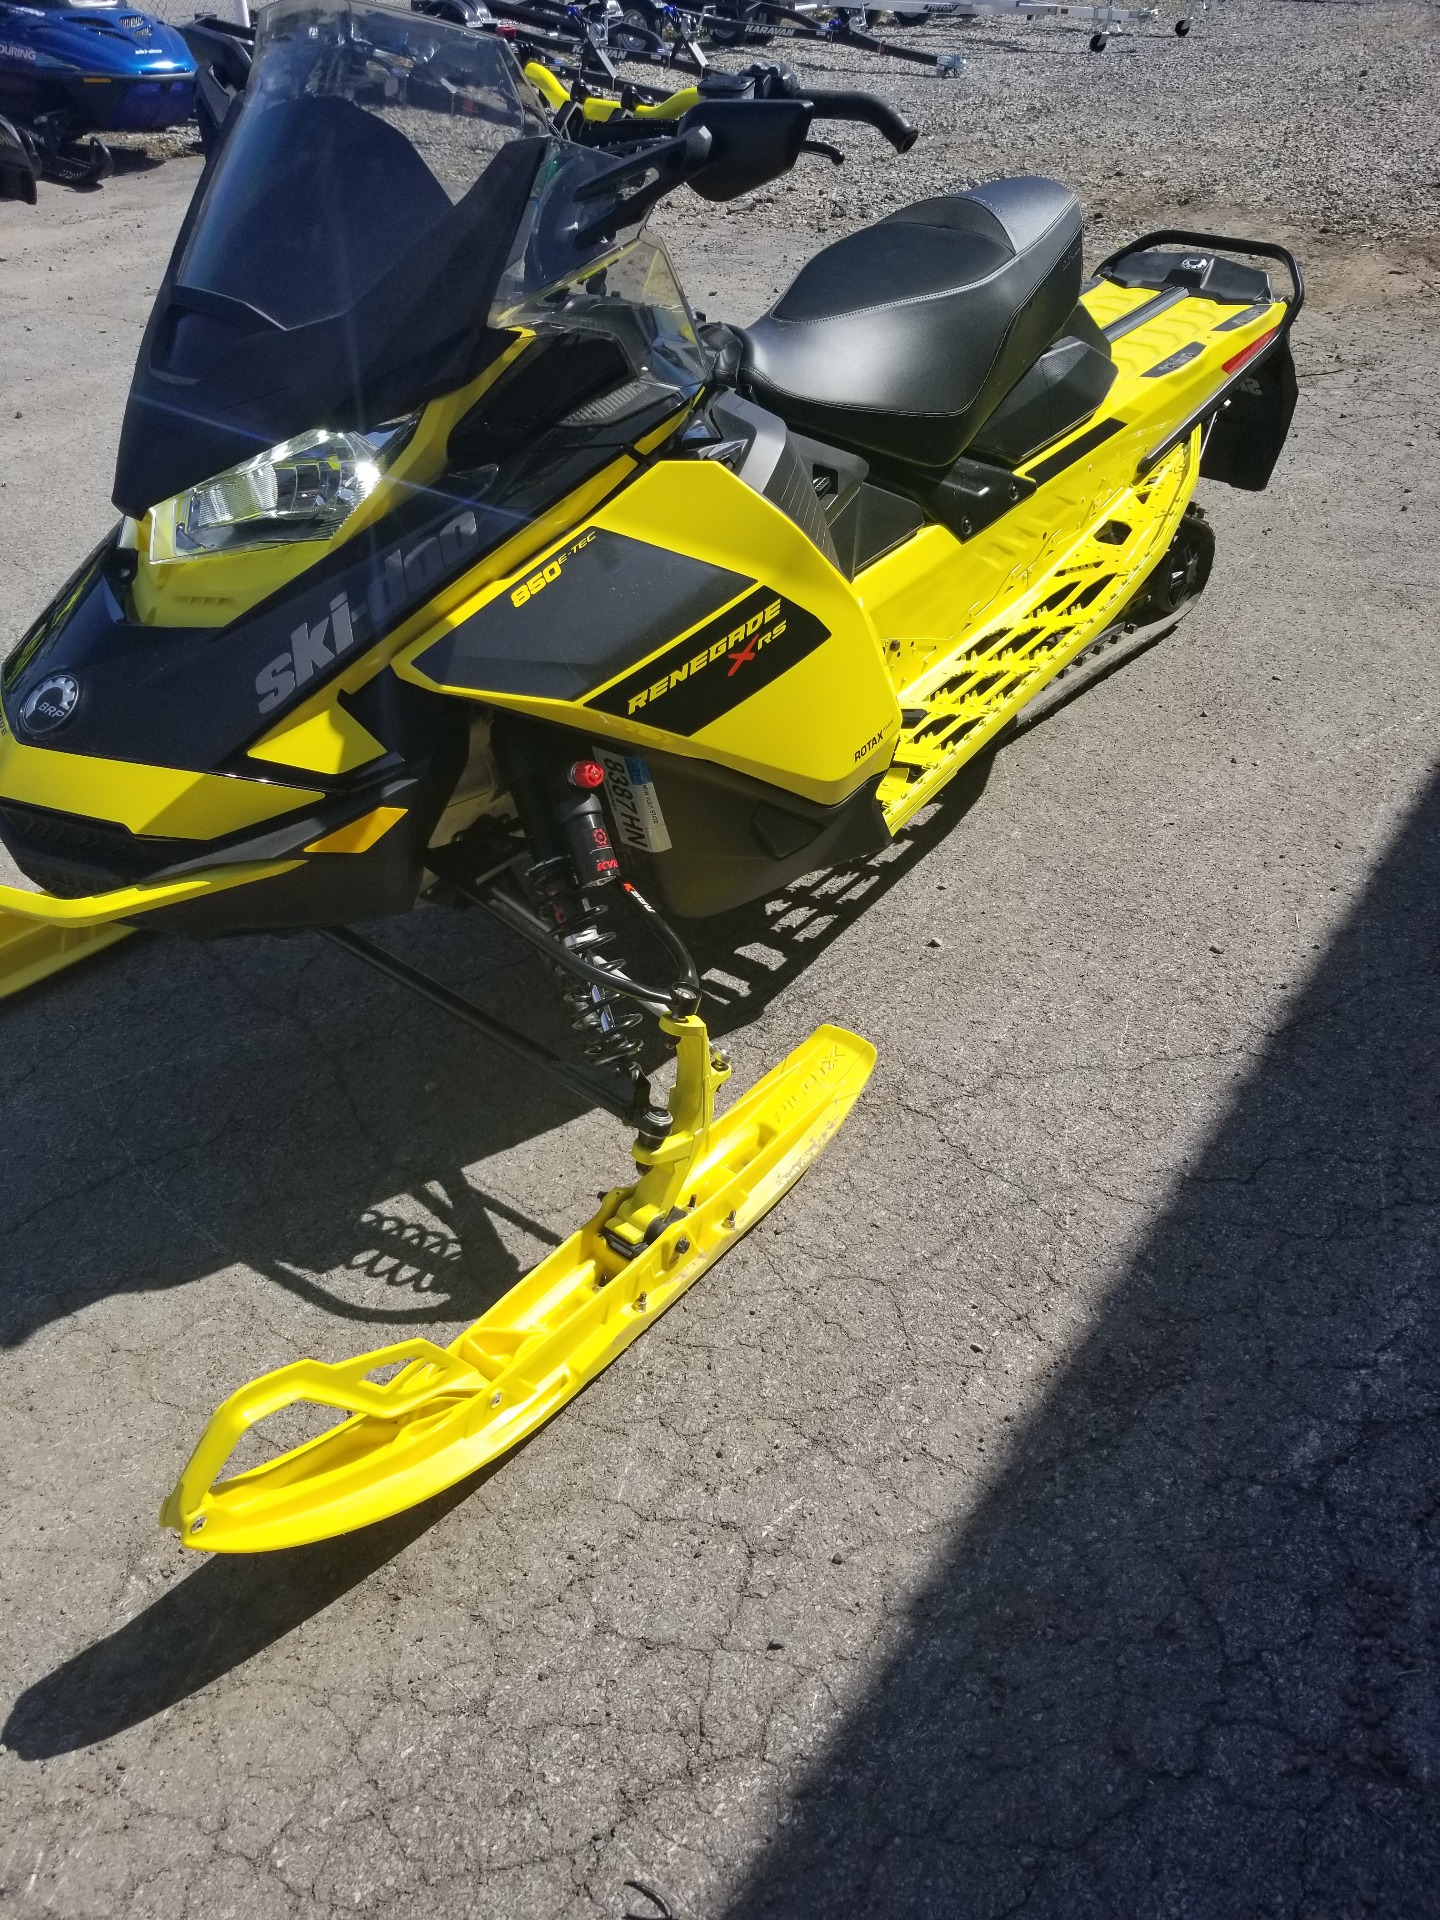 2021 Ski-Doo 850 RENEGADE XRS in Phoenix, New York - Photo 2